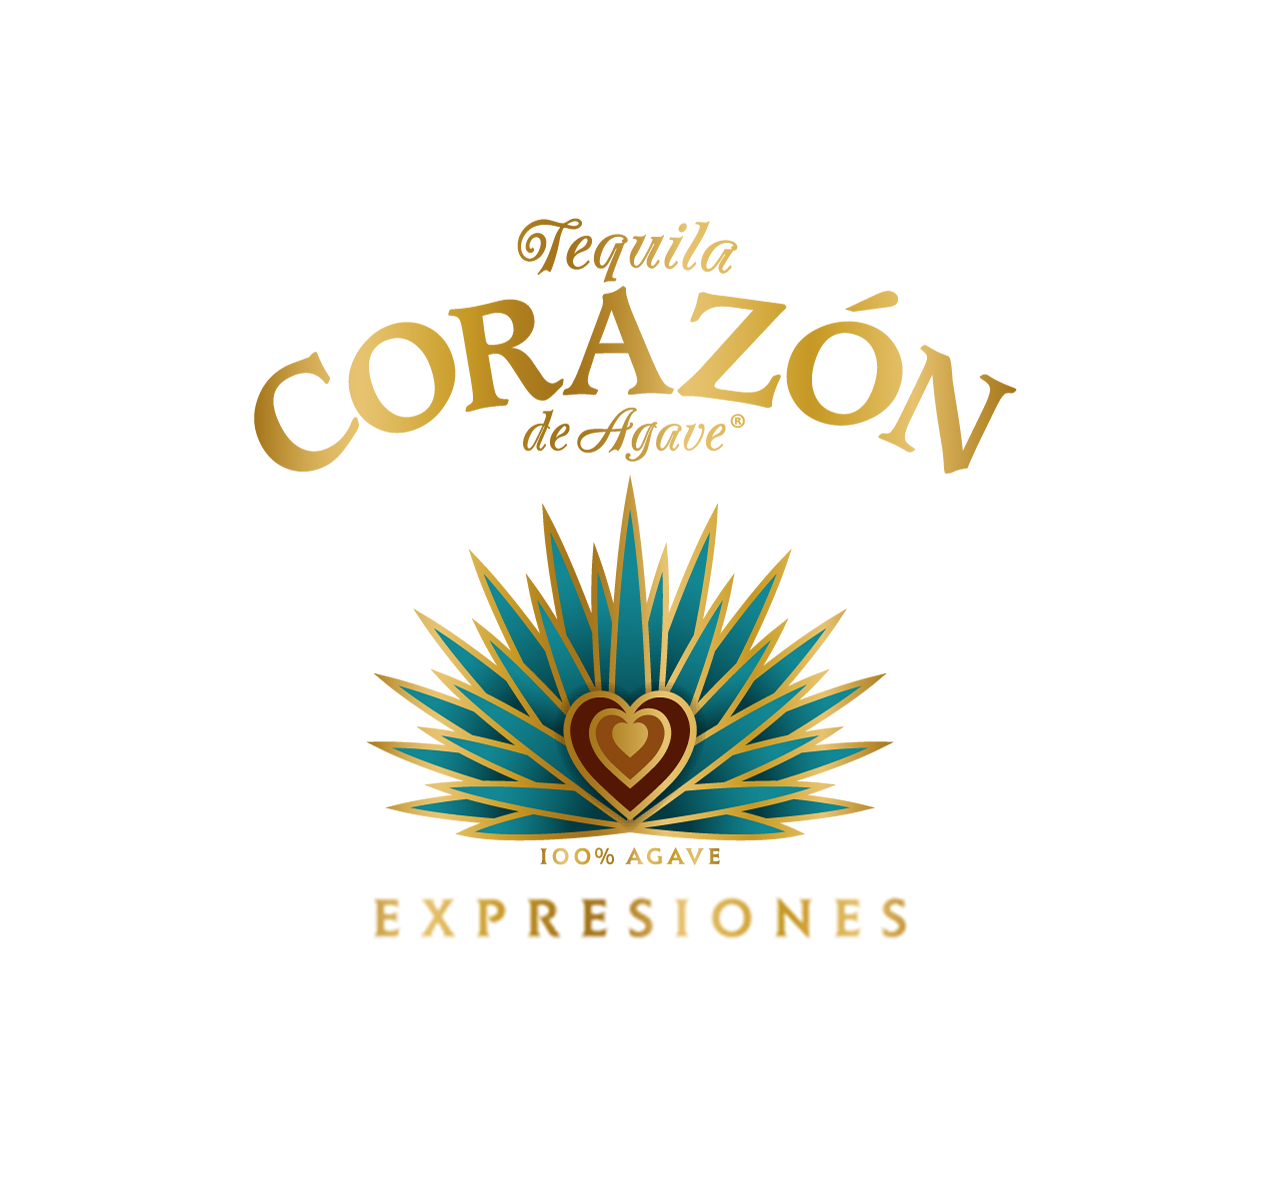 Corazon_EX2_small_gold.png